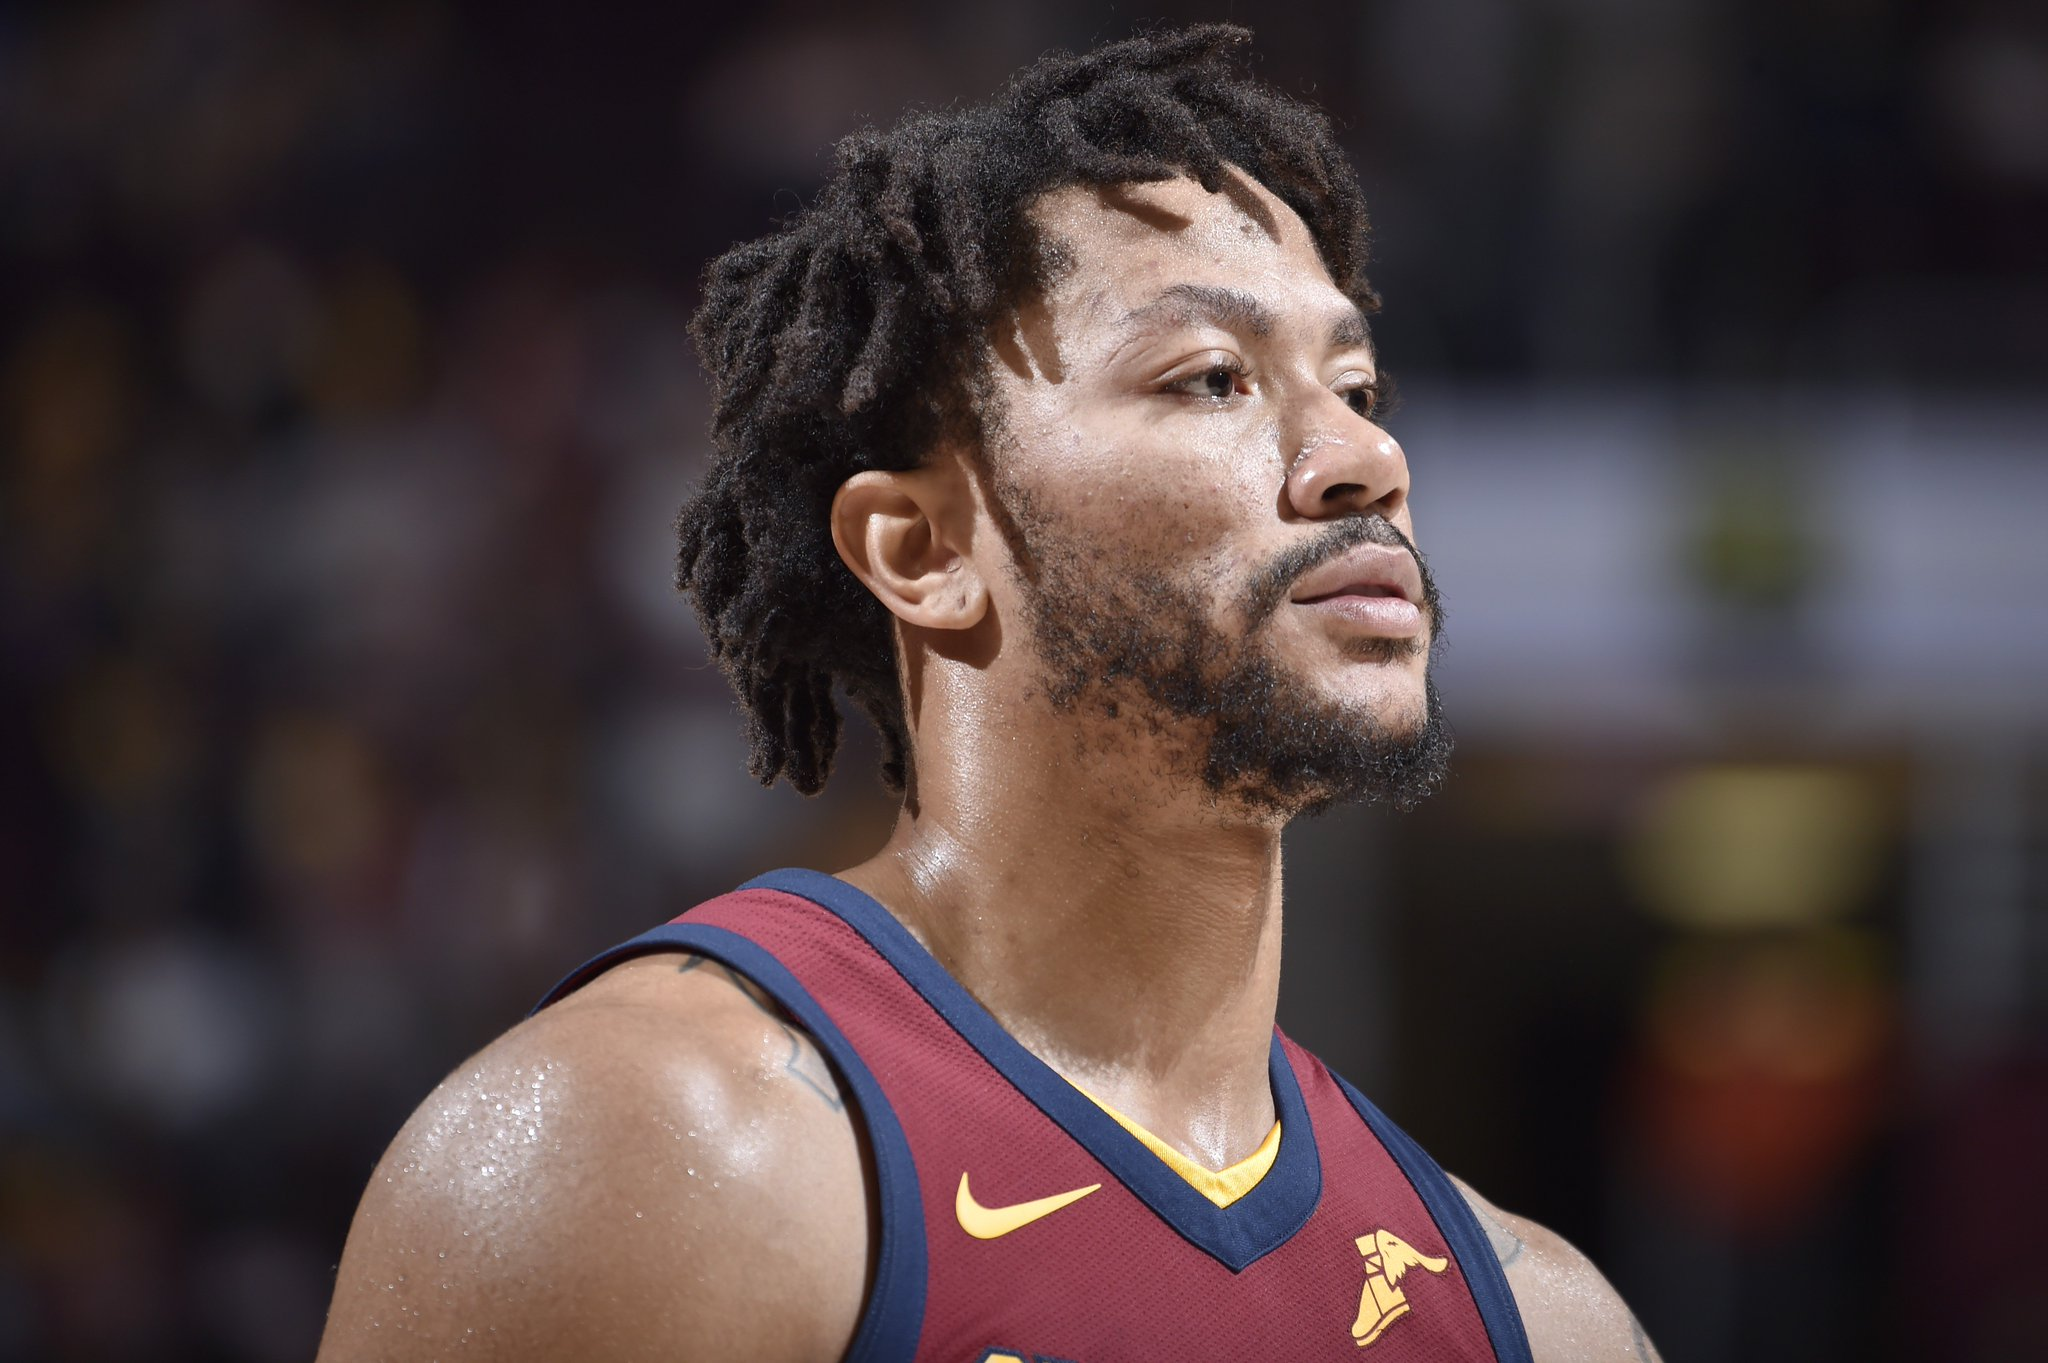 Derrick Rose's NBA future is officially in jeopardy https://t.co/aS9jJzaDR2 https://t.co/veENSQvLlQ